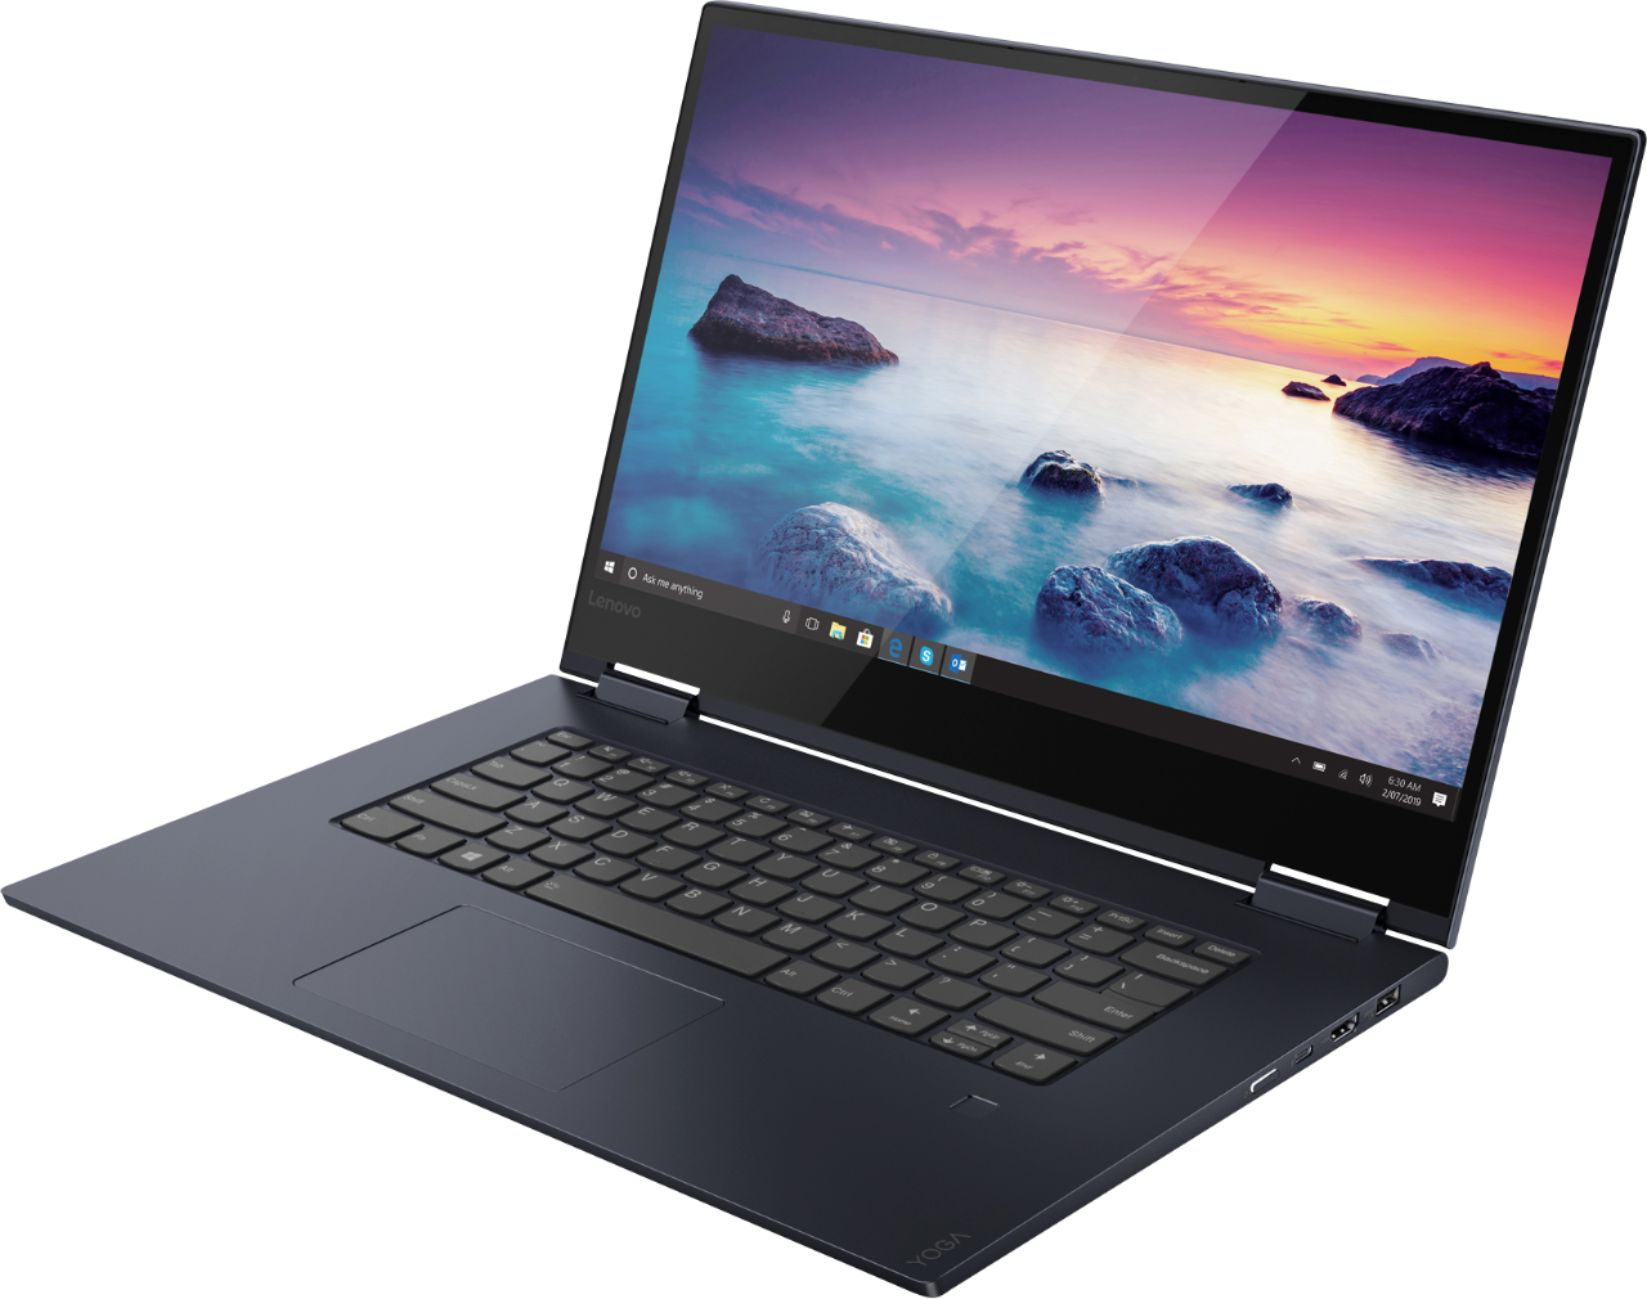 """Left Zoom. Lenovo - Geek Squad Certified Refurbished Yoga 730 2-in-1 15.6"""" Touch-Screen Laptop - Intel Core i7 - 12GB Memory - 256GB SSD - Abyss Blue."""